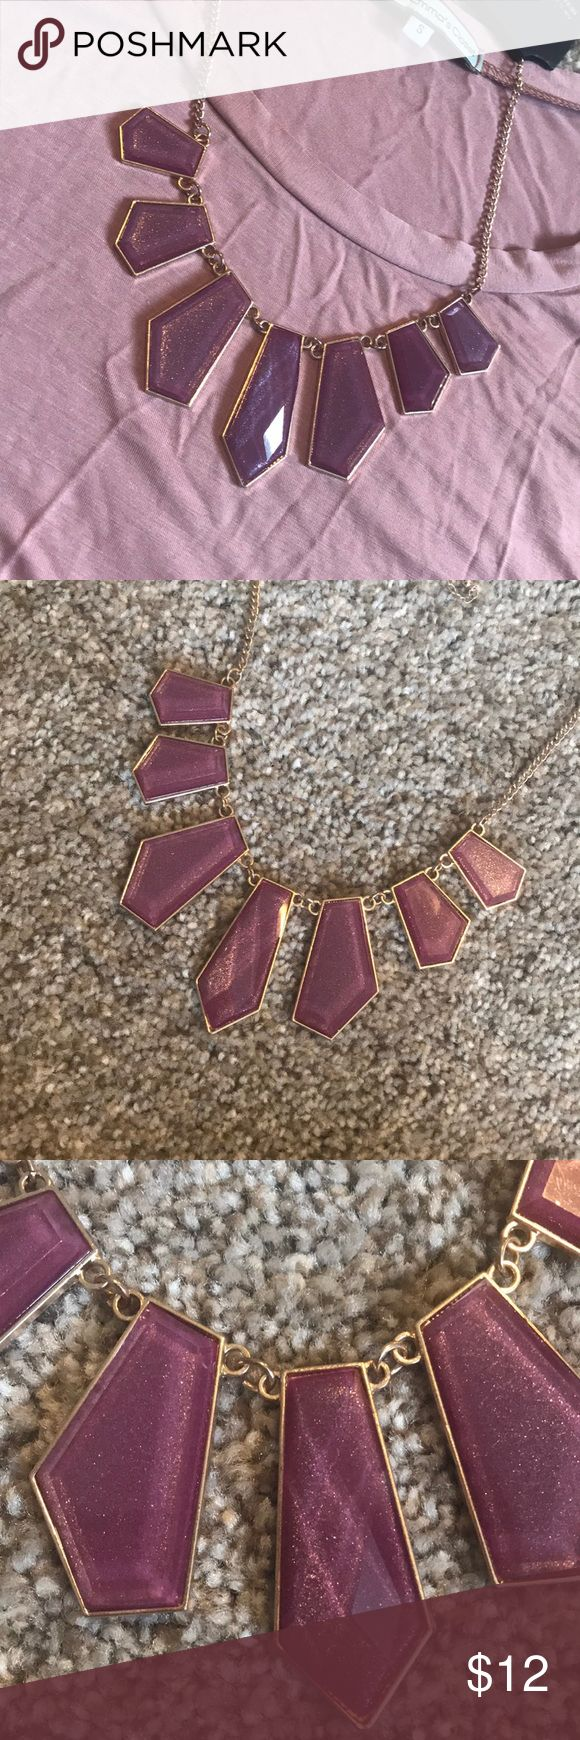 """NWT purple statement necklace NWT- statement necklace with gold hardware and shimmery purple """"gems"""". Jewelry Necklaces"""